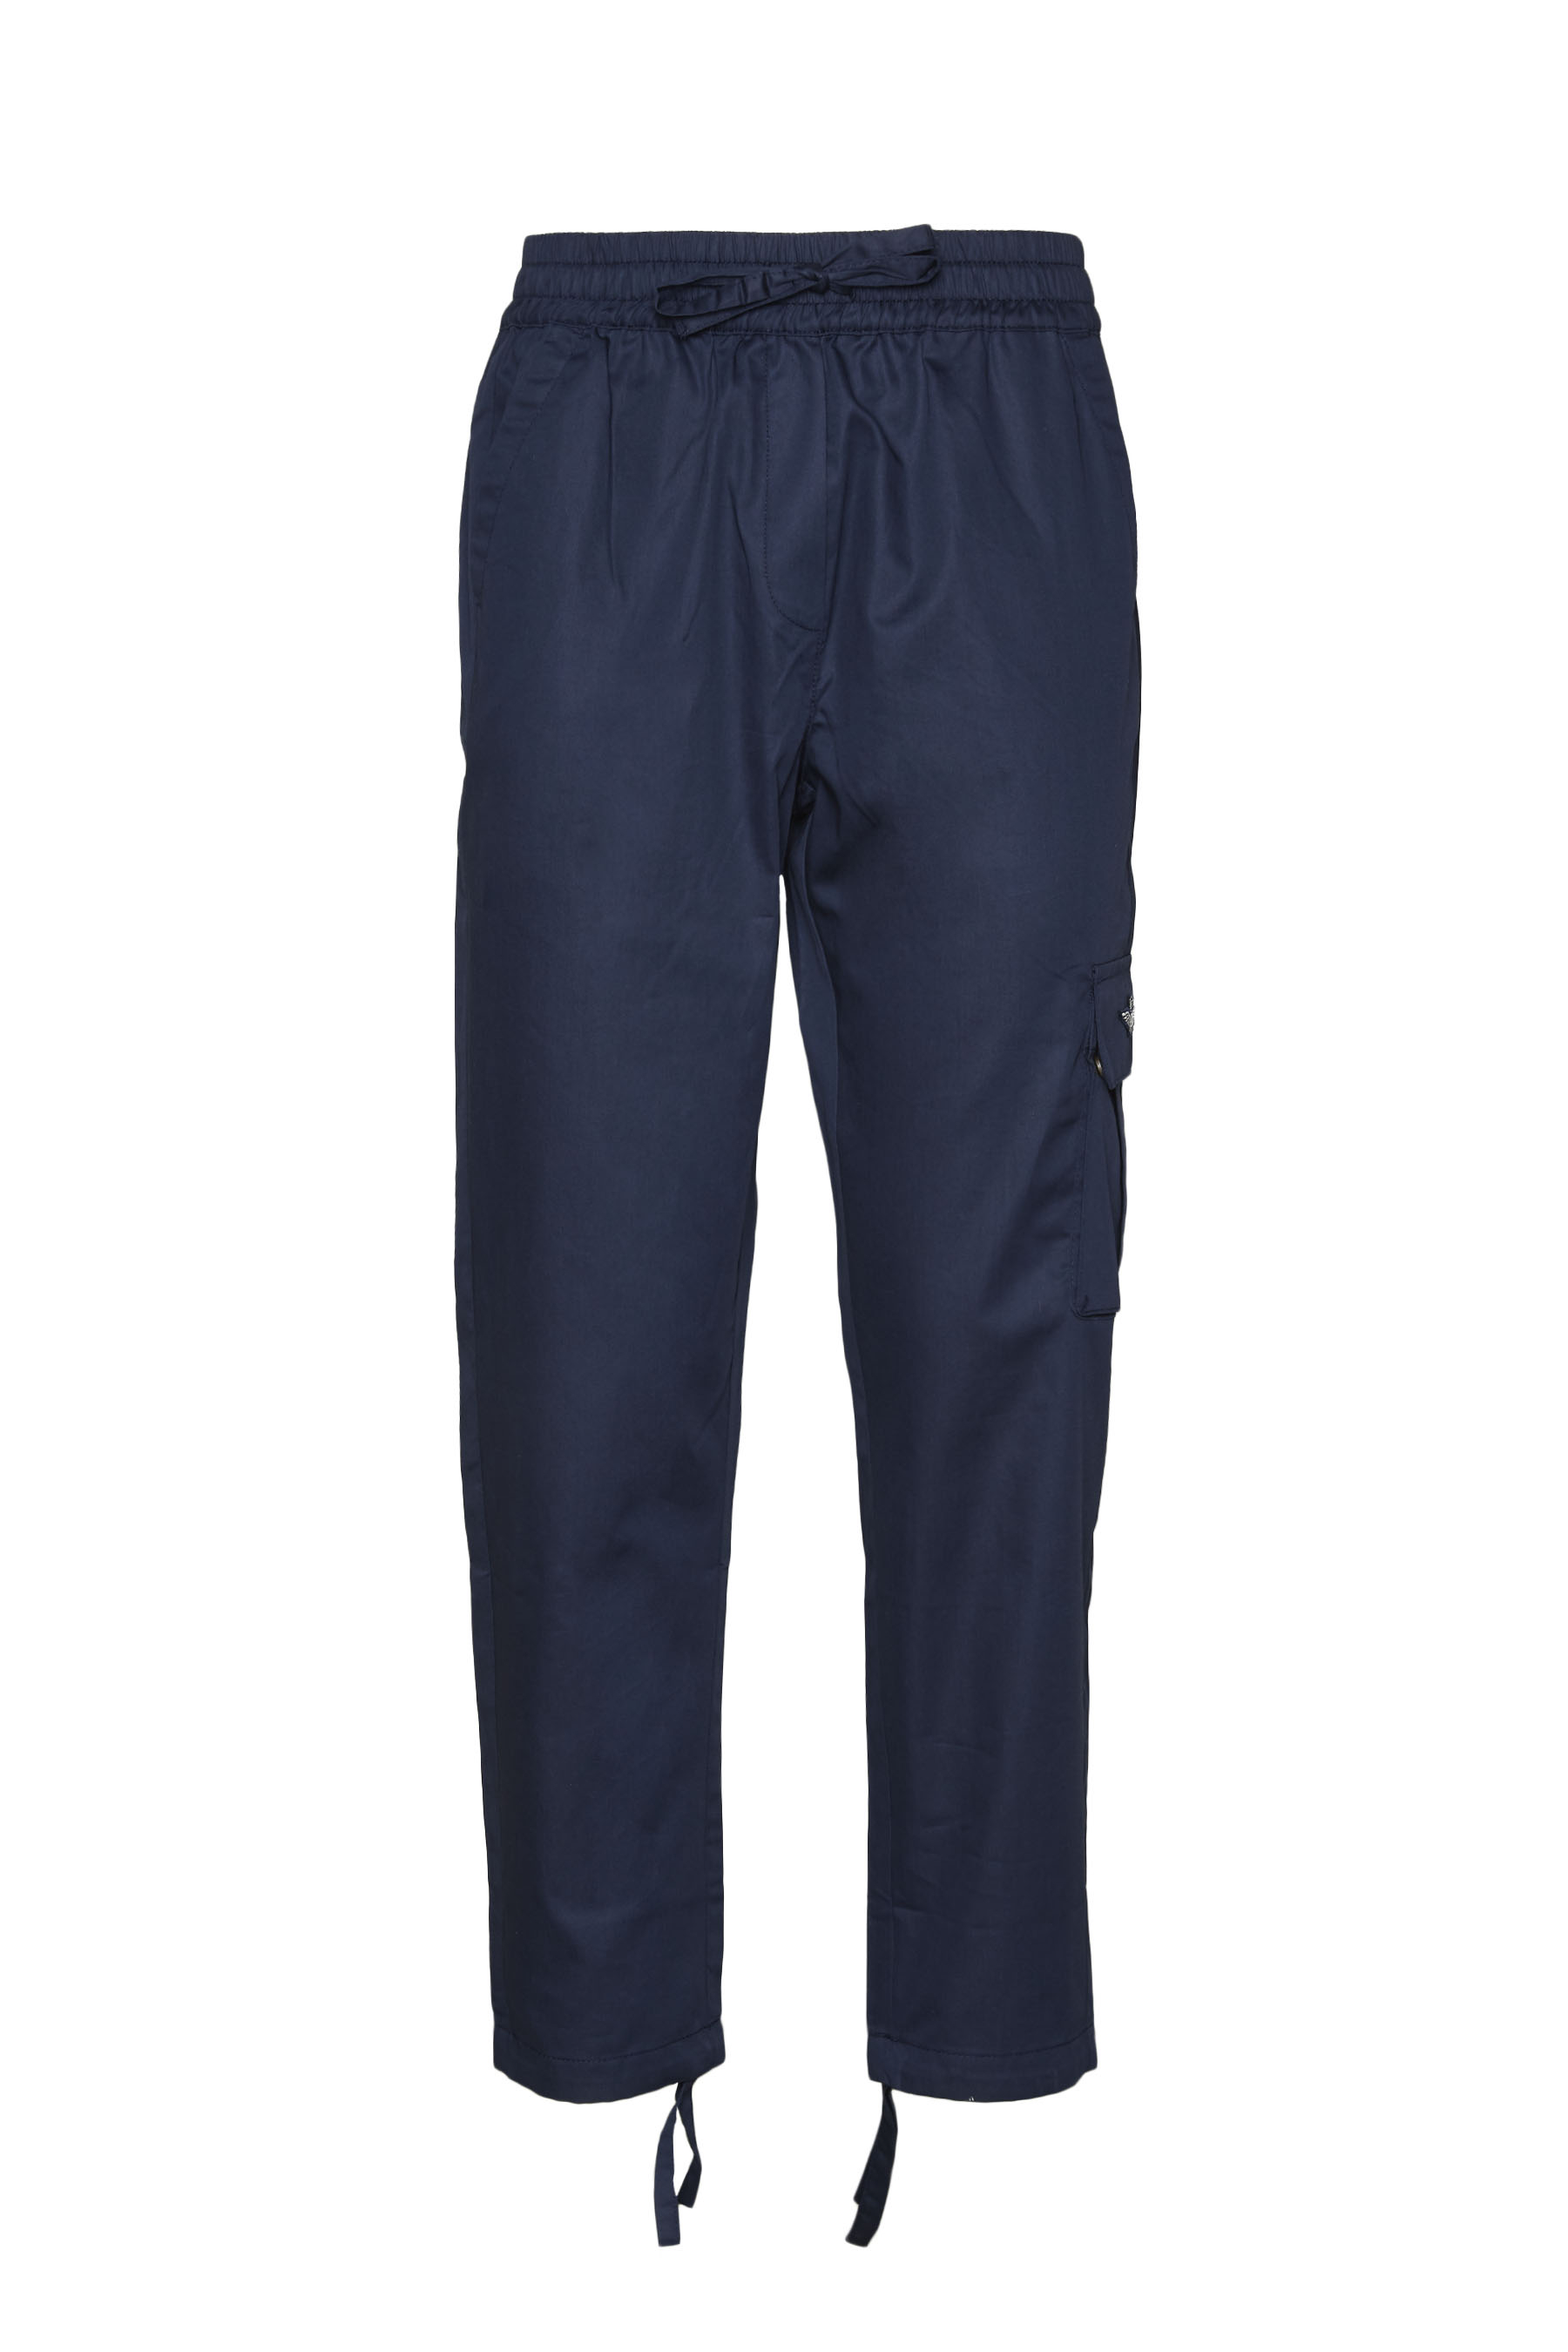 PA1400 - PANTALONE CON COULISSE 1